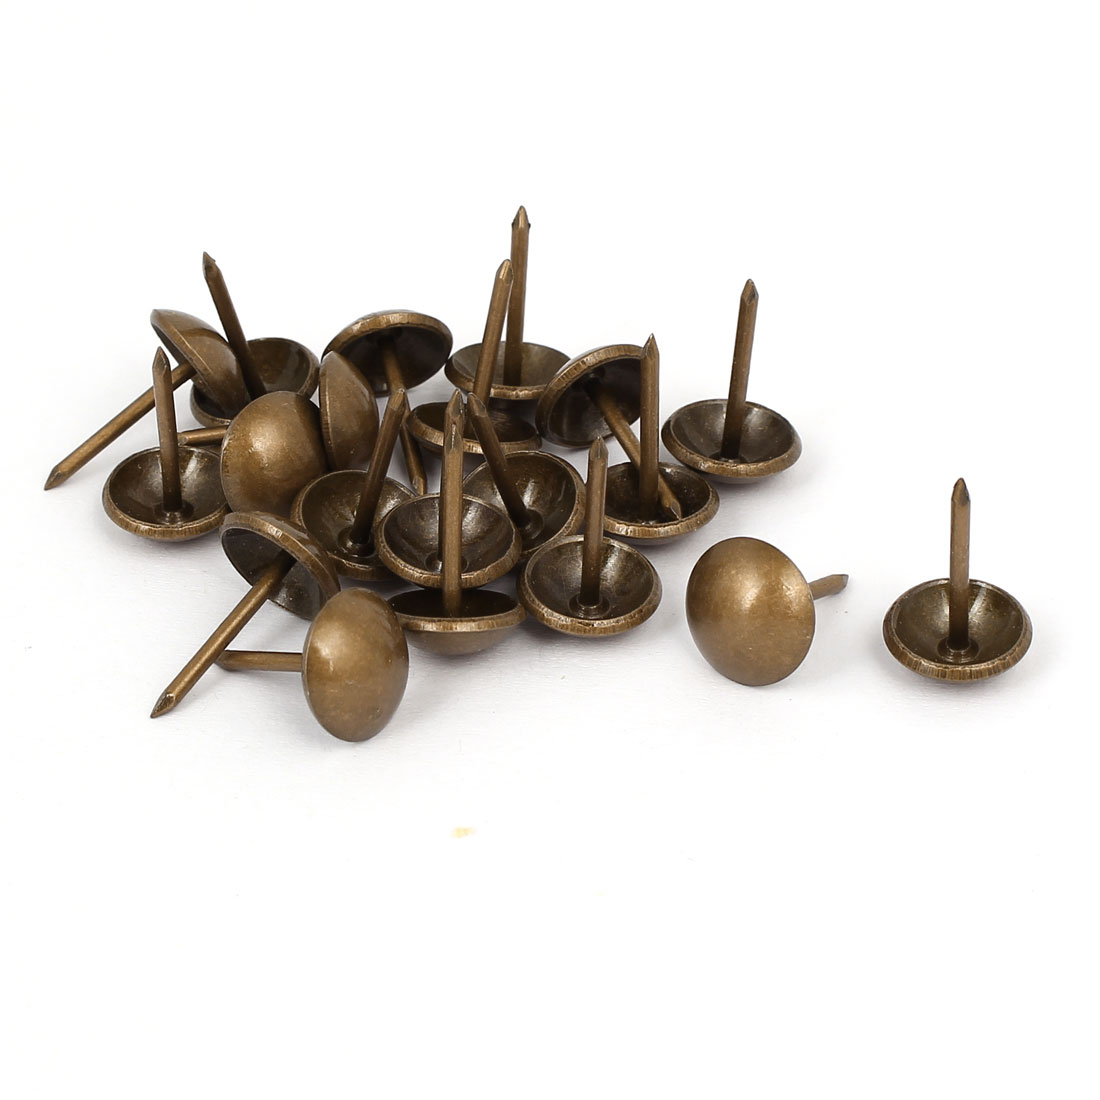 11mm Head Dia 17mm Height Upholstery Nail Thumb Tacks Push Pin Copper Tone 60pcs